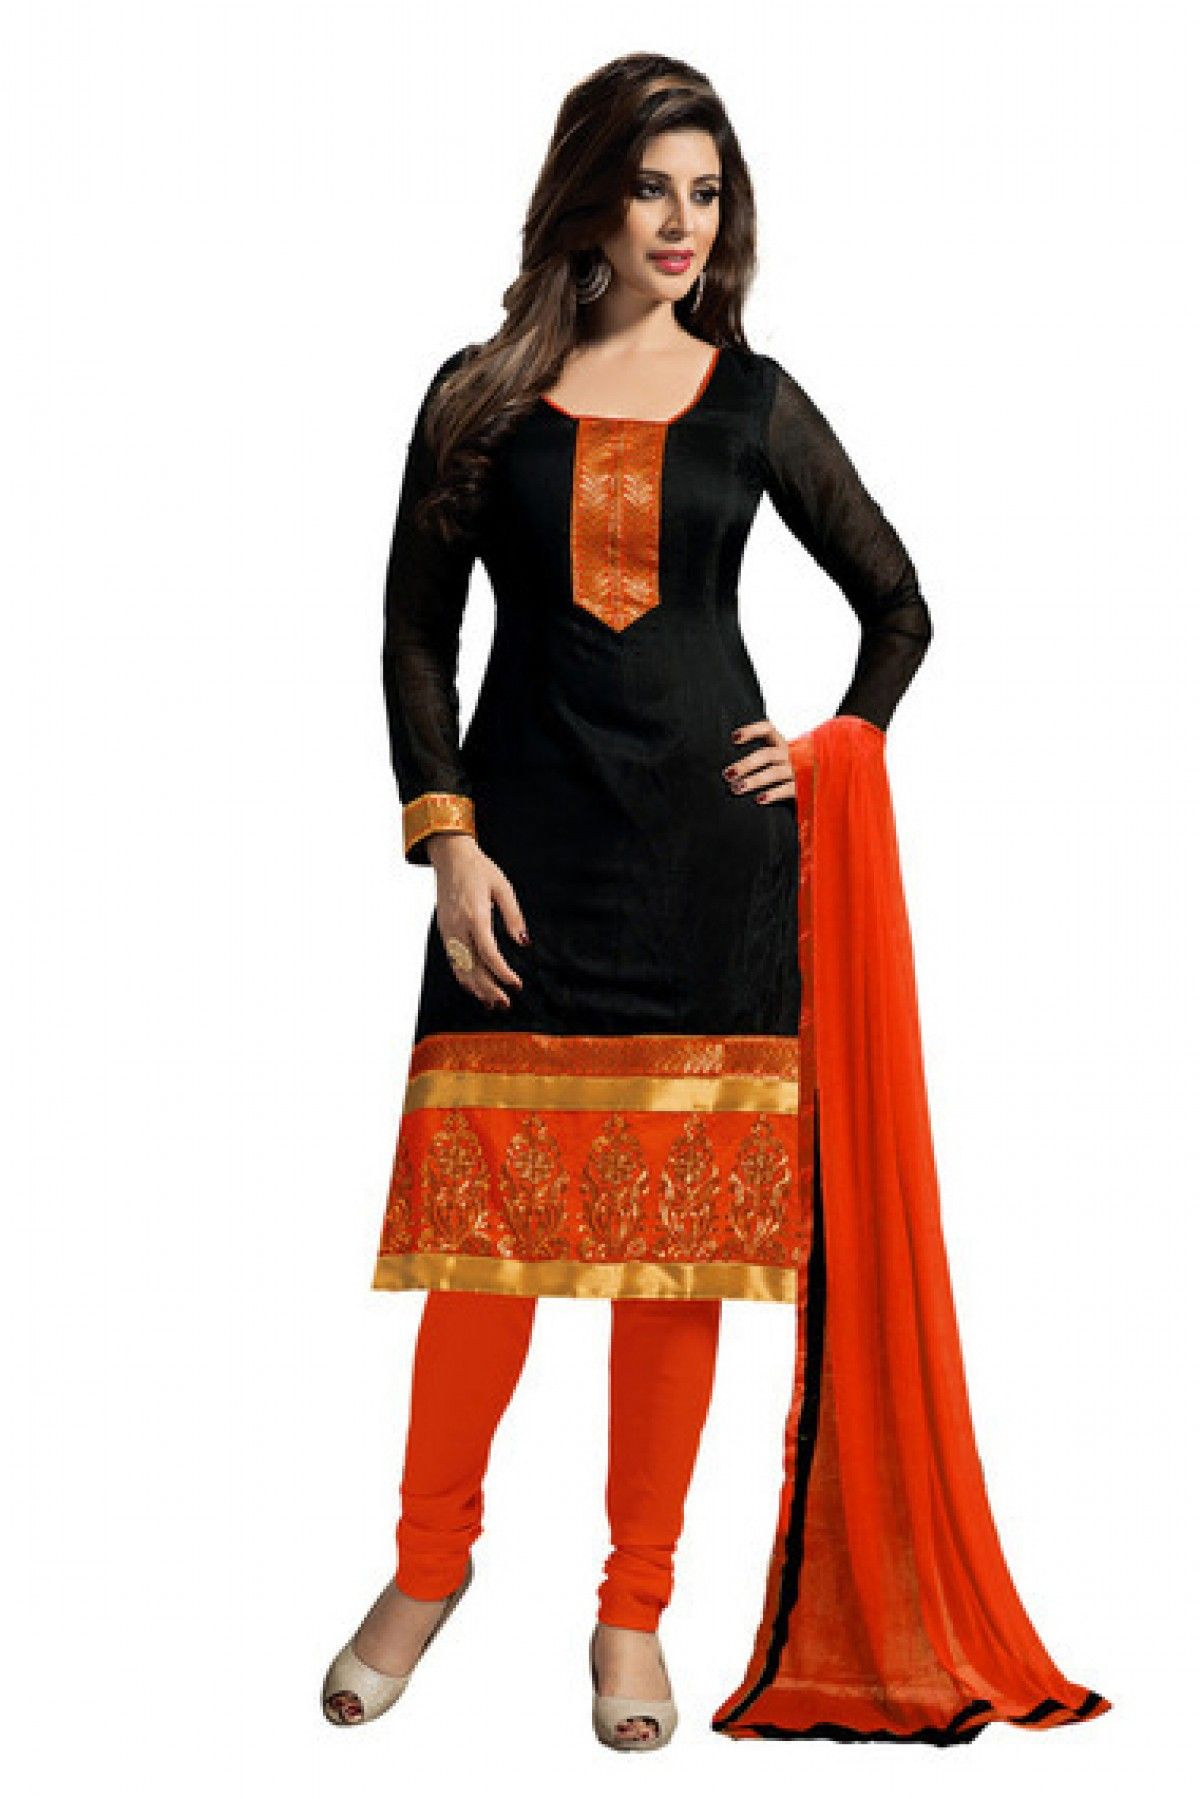 40d8ab39a Chanderi Party Wear Churidar Suit in Black Colour.It comes with matching  Dupatta and Bottom.It is crfated with Embroidery,Lace Work.